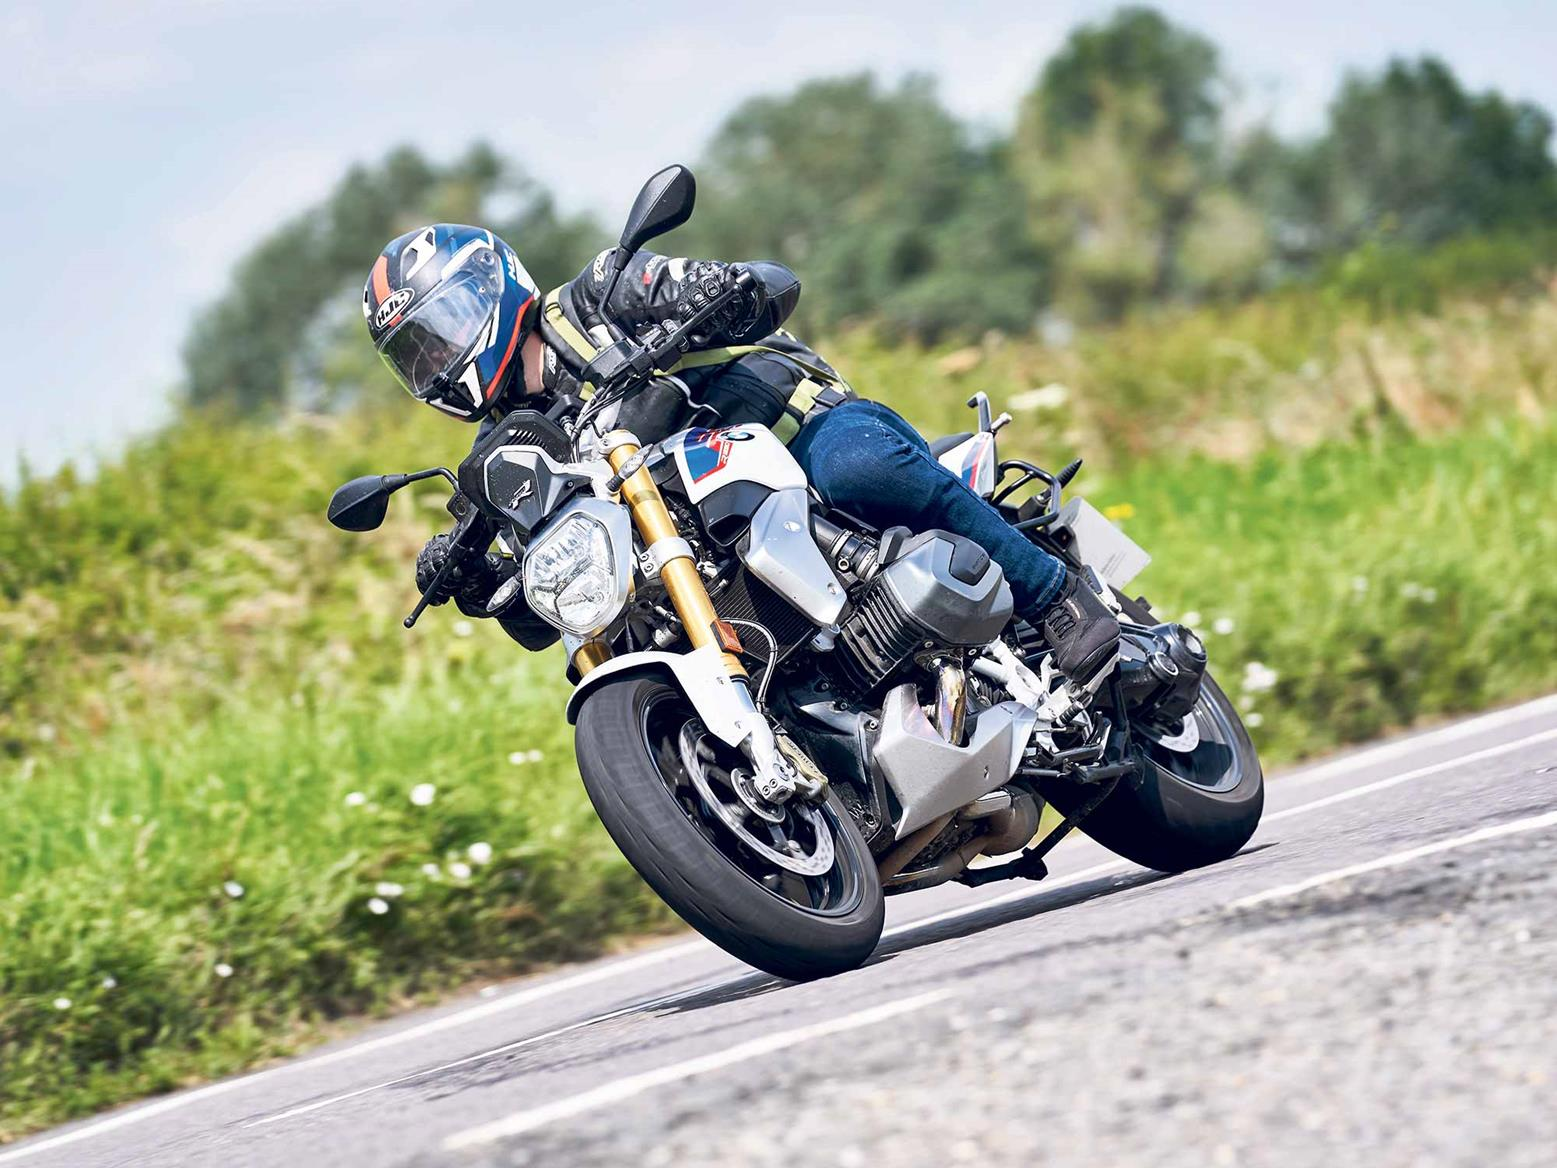 The lids are alright: Best sports-touring motorcycle helmets for under £300